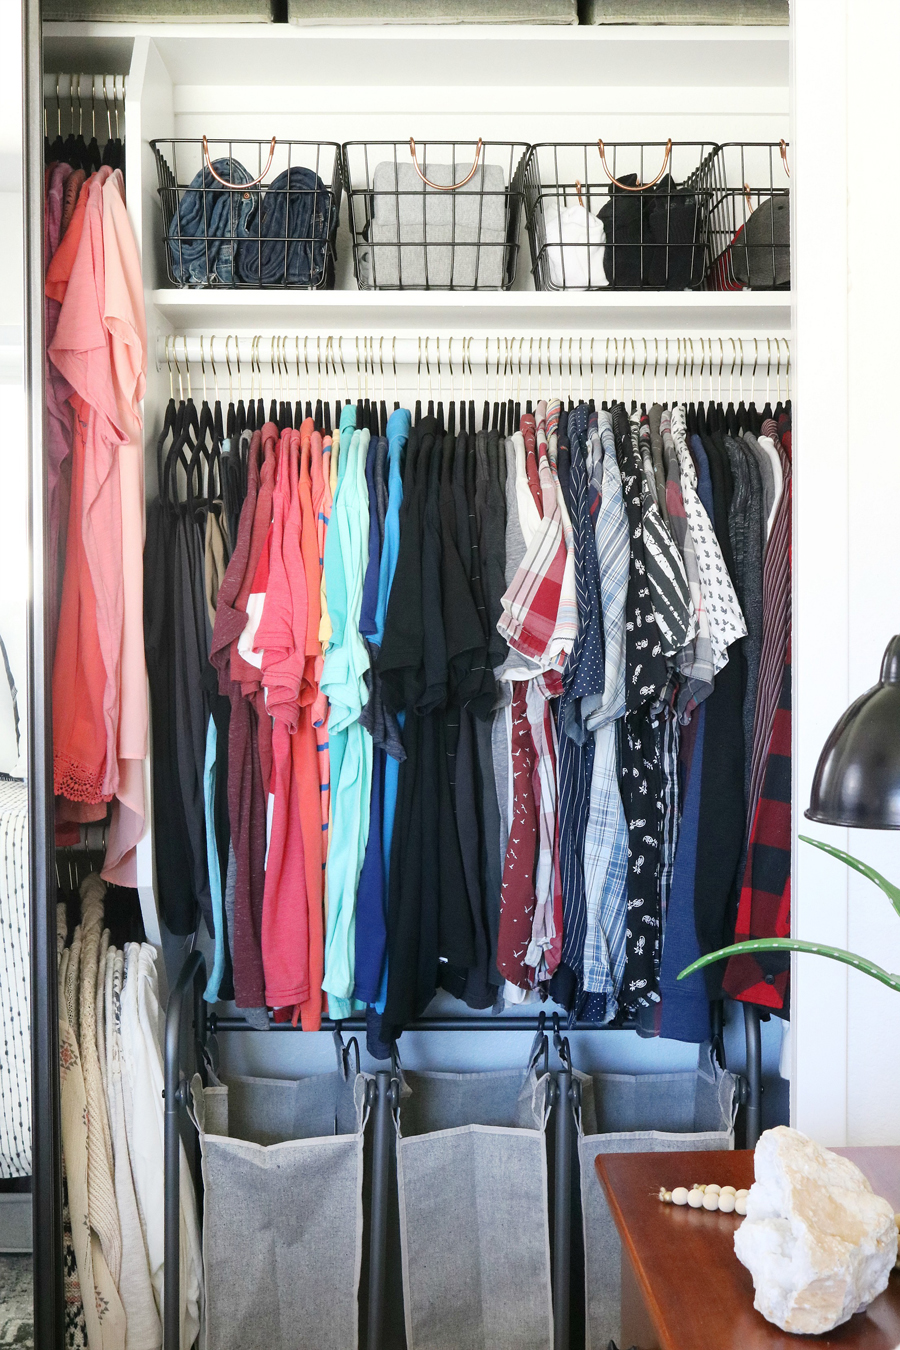 Easy Organization Ideas for Small Spaces